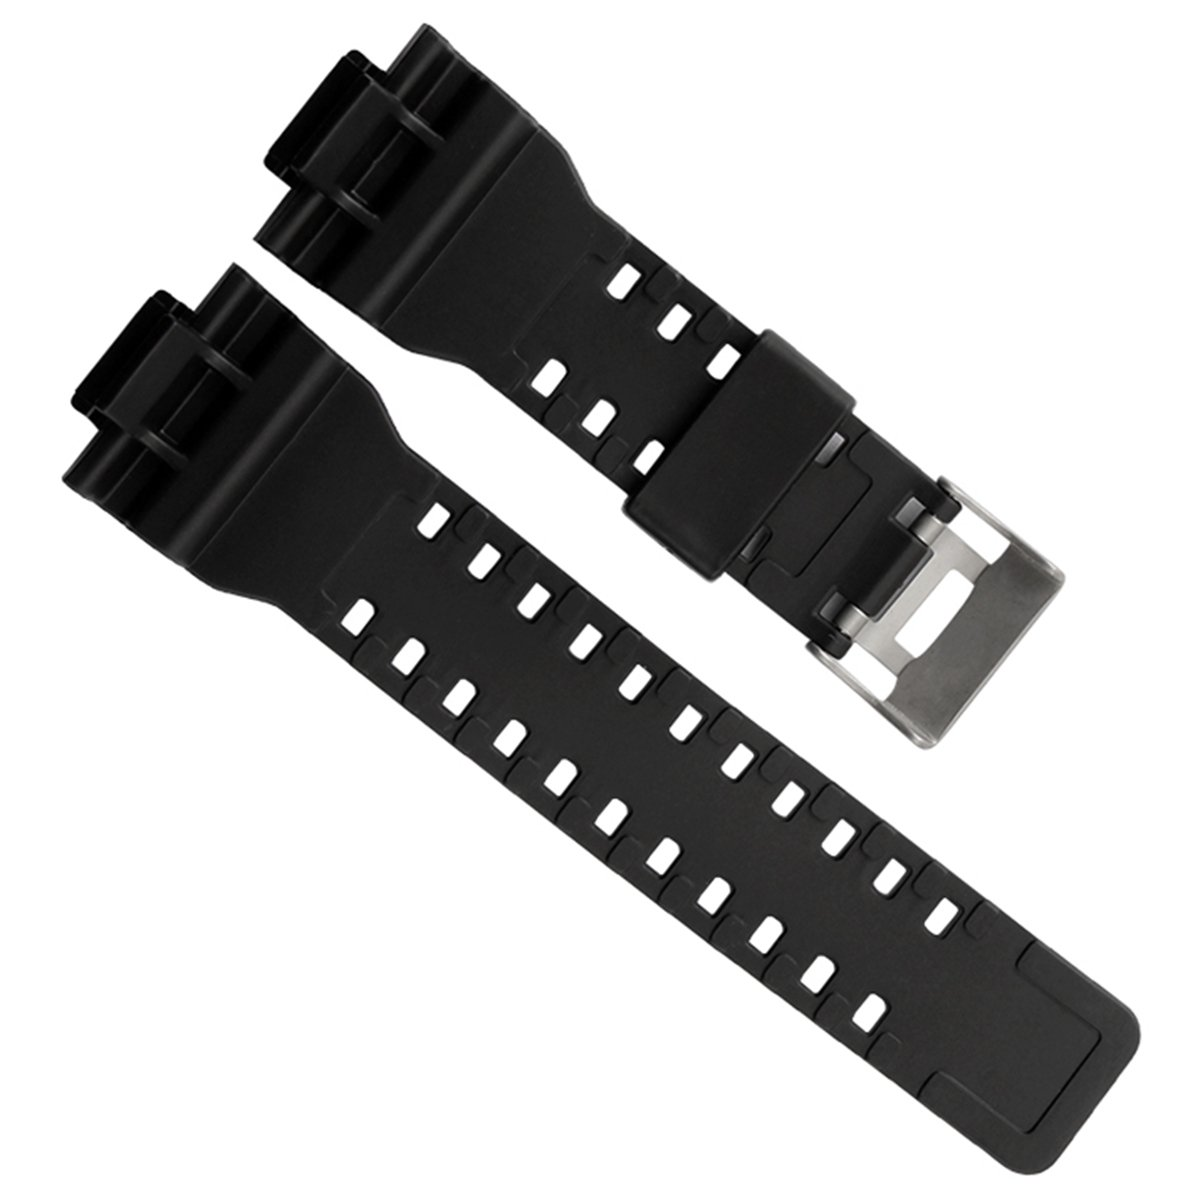 Olibopo Natural Resin Replacement Watch Band Strap For Casio Mens G Shock Gd120 Ga 100 Ga 110 Ga 100c